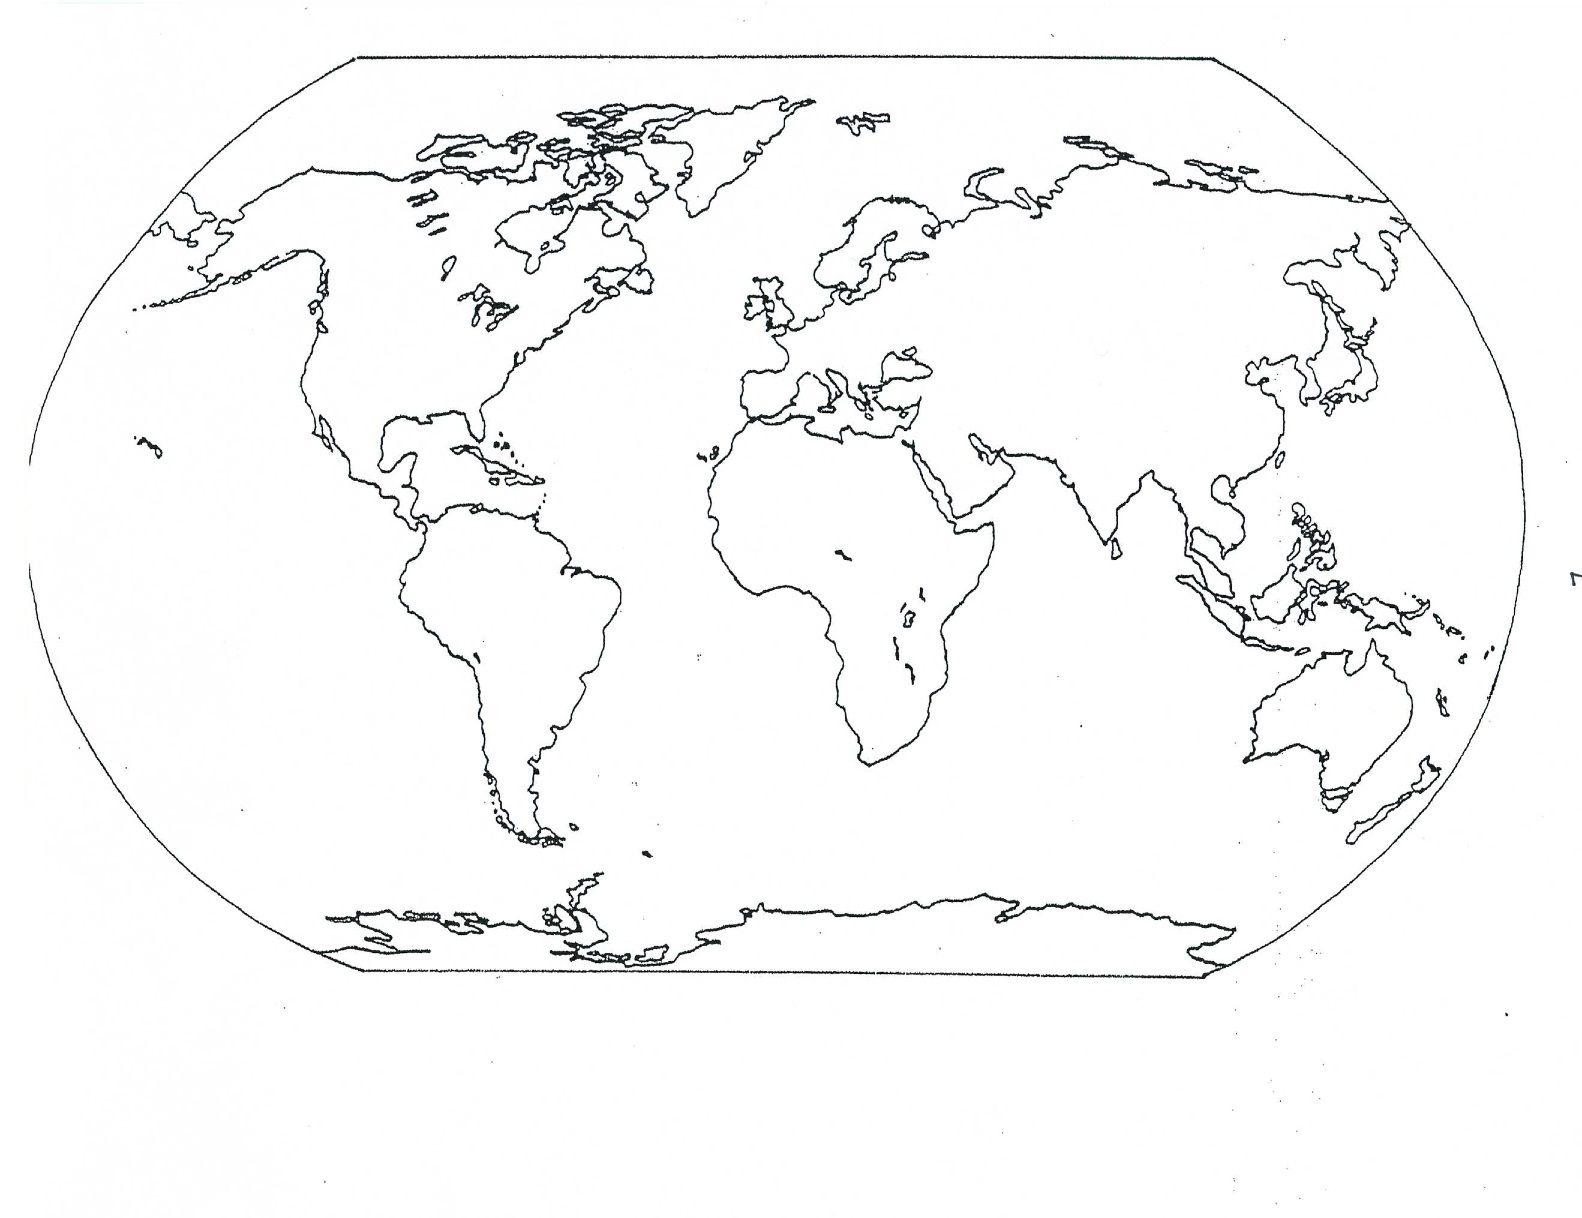 Free printable world map coloring pages for kids best coloring world map coloring page for kids gumiabroncs Gallery